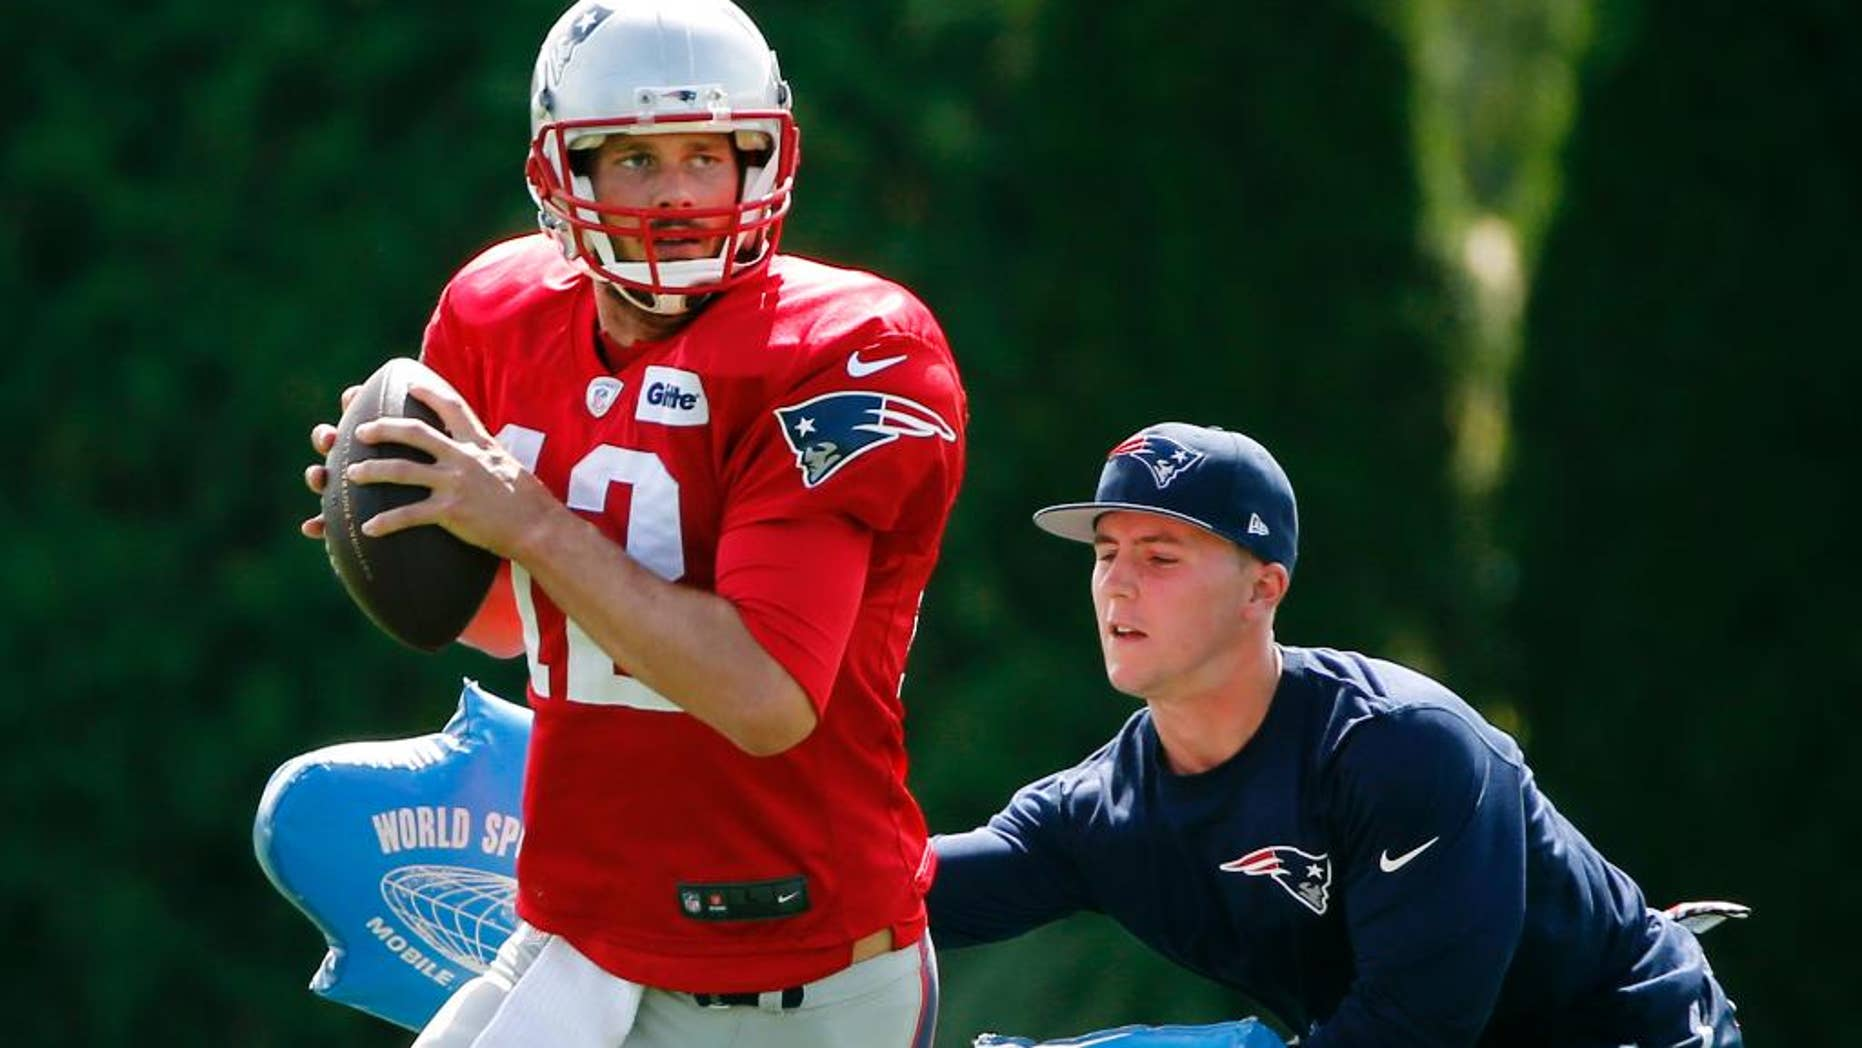 New England Patriots quarterback Tom Brady passes under pressure during a drill at team practice in Foxborough, Mass., Wednesday, Sept. 3, 2014. The Patriots are preparing for their opening NFL football game against the Miami Dolphins on Sunday in Miami. (AP Photo/Elise Amendola)